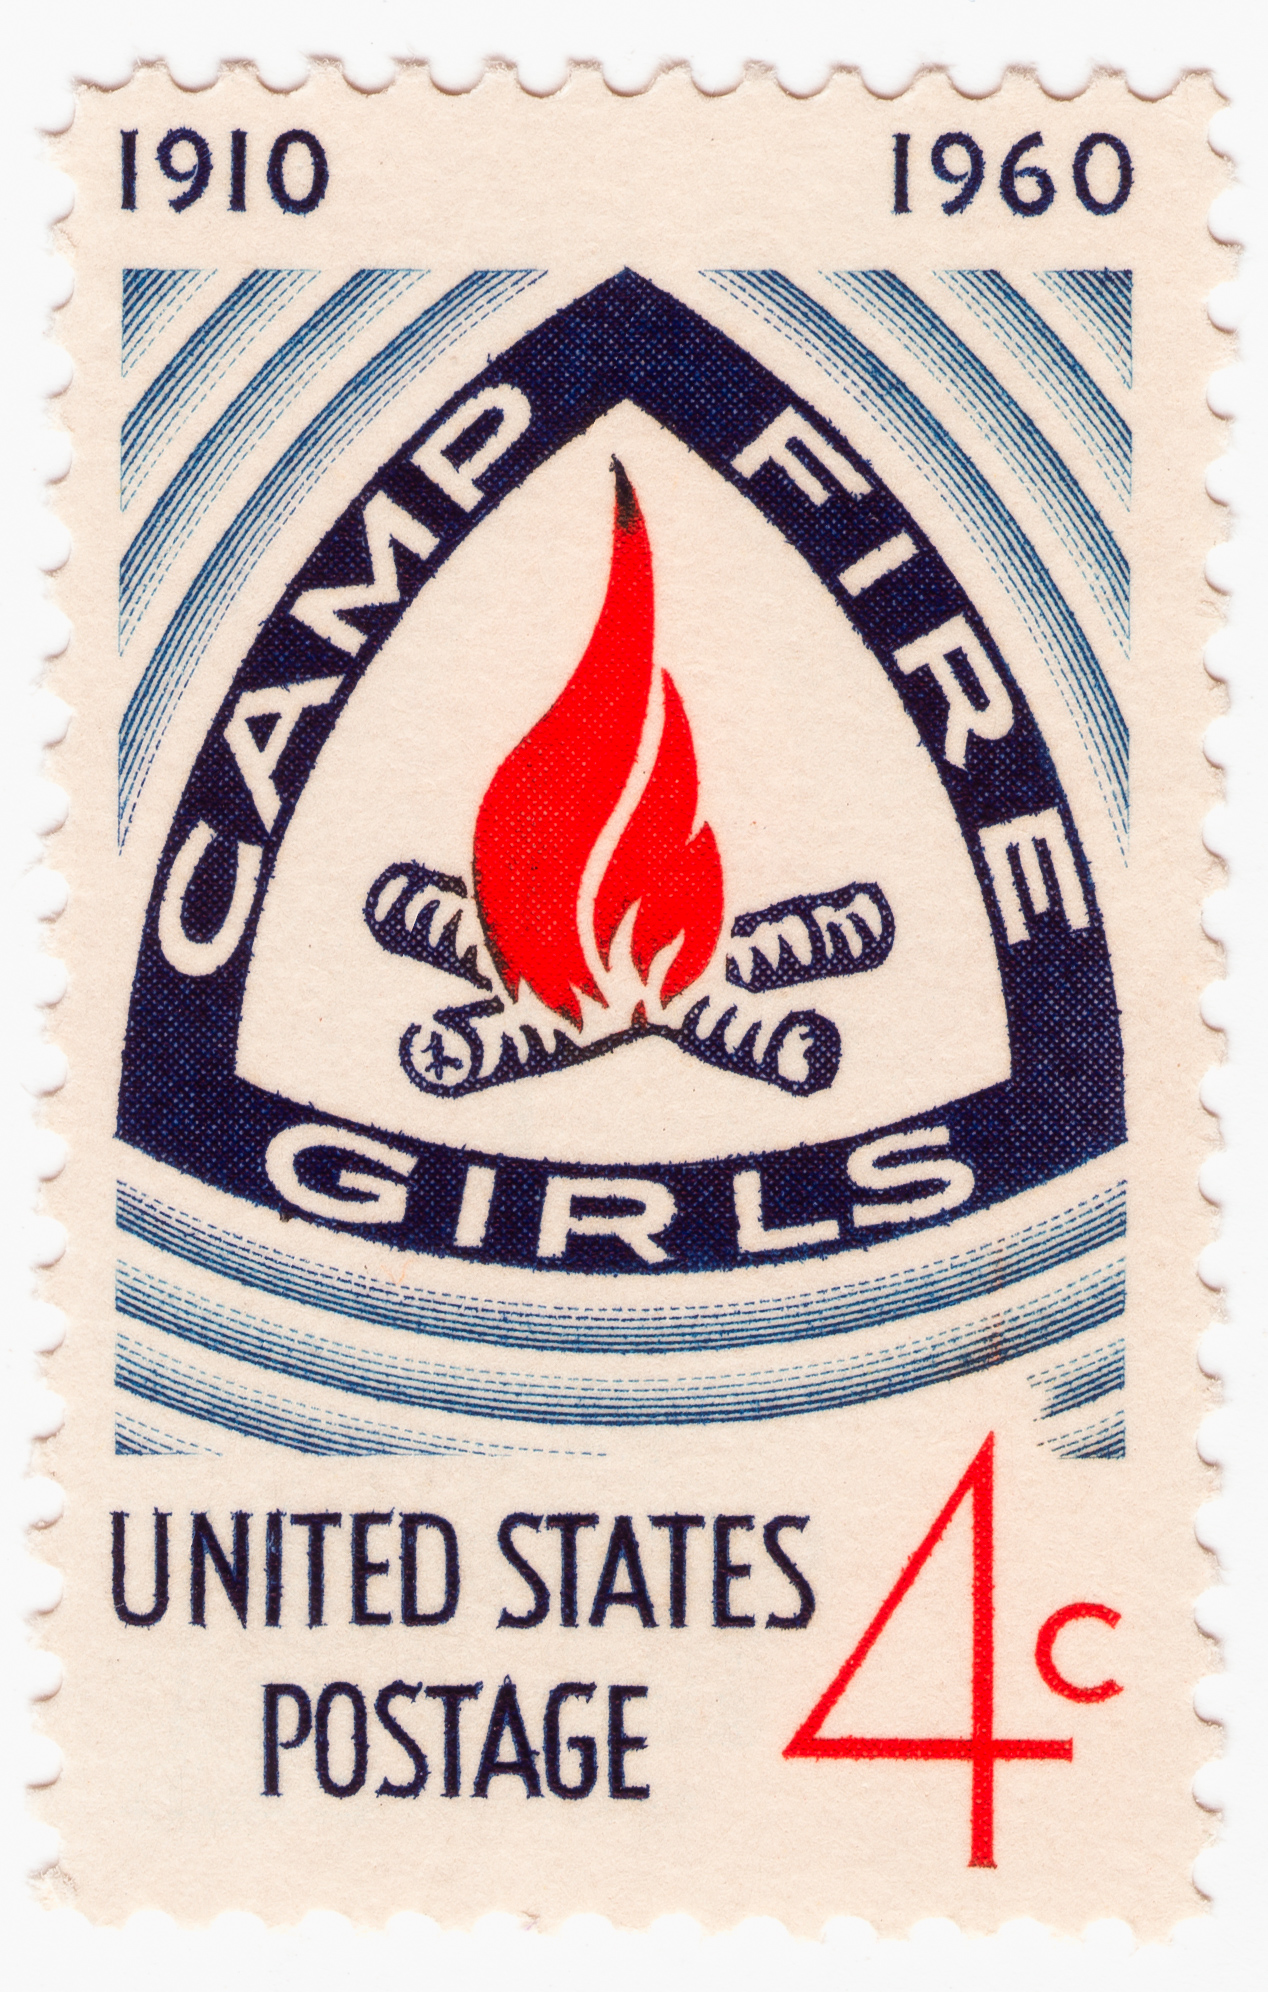 50 Years Camp Fire Girls (1960)